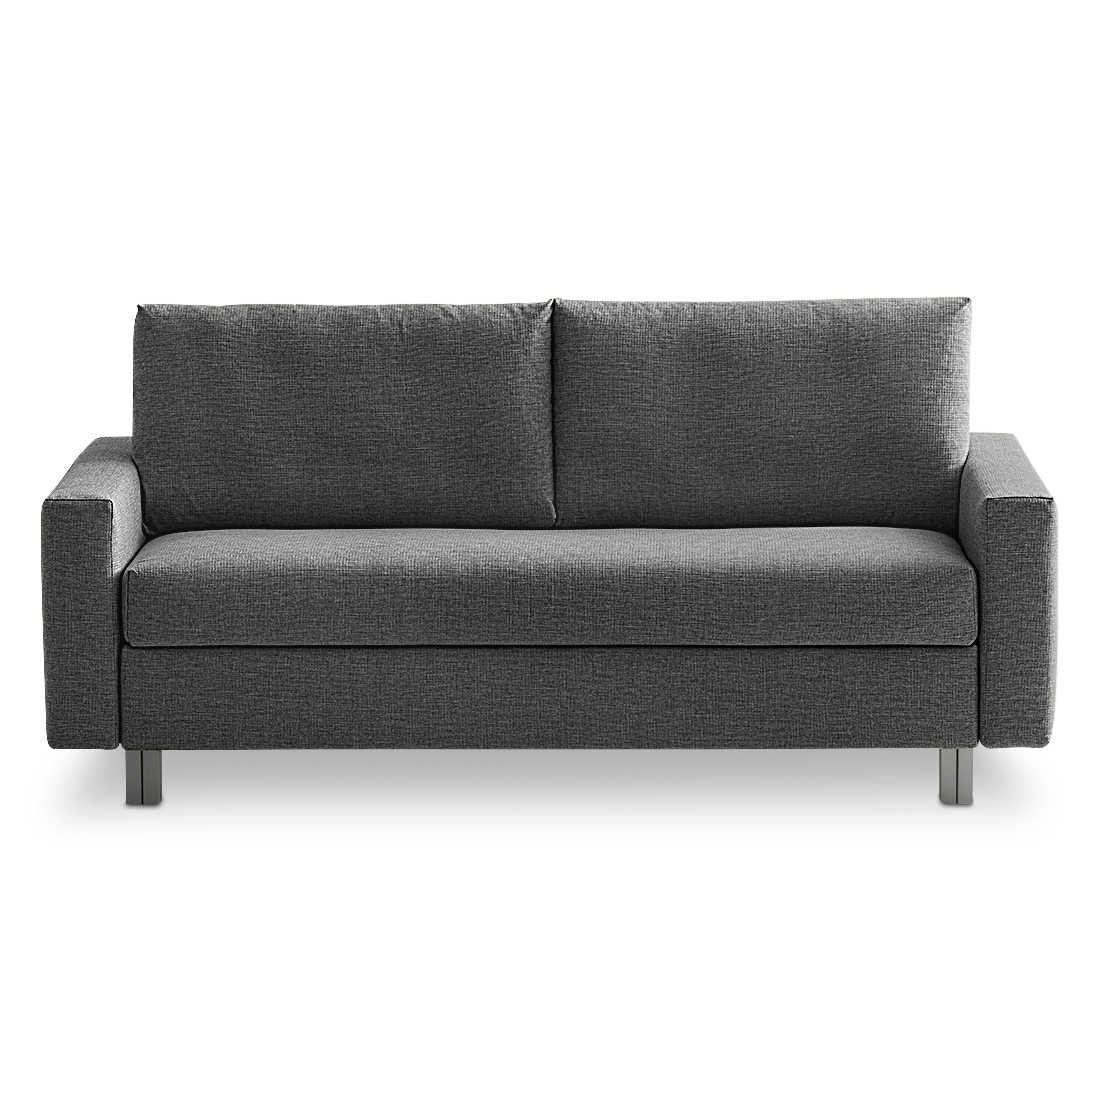 franz fertig schlafsofa maxita grau stoff online kaufen bei woonio. Black Bedroom Furniture Sets. Home Design Ideas